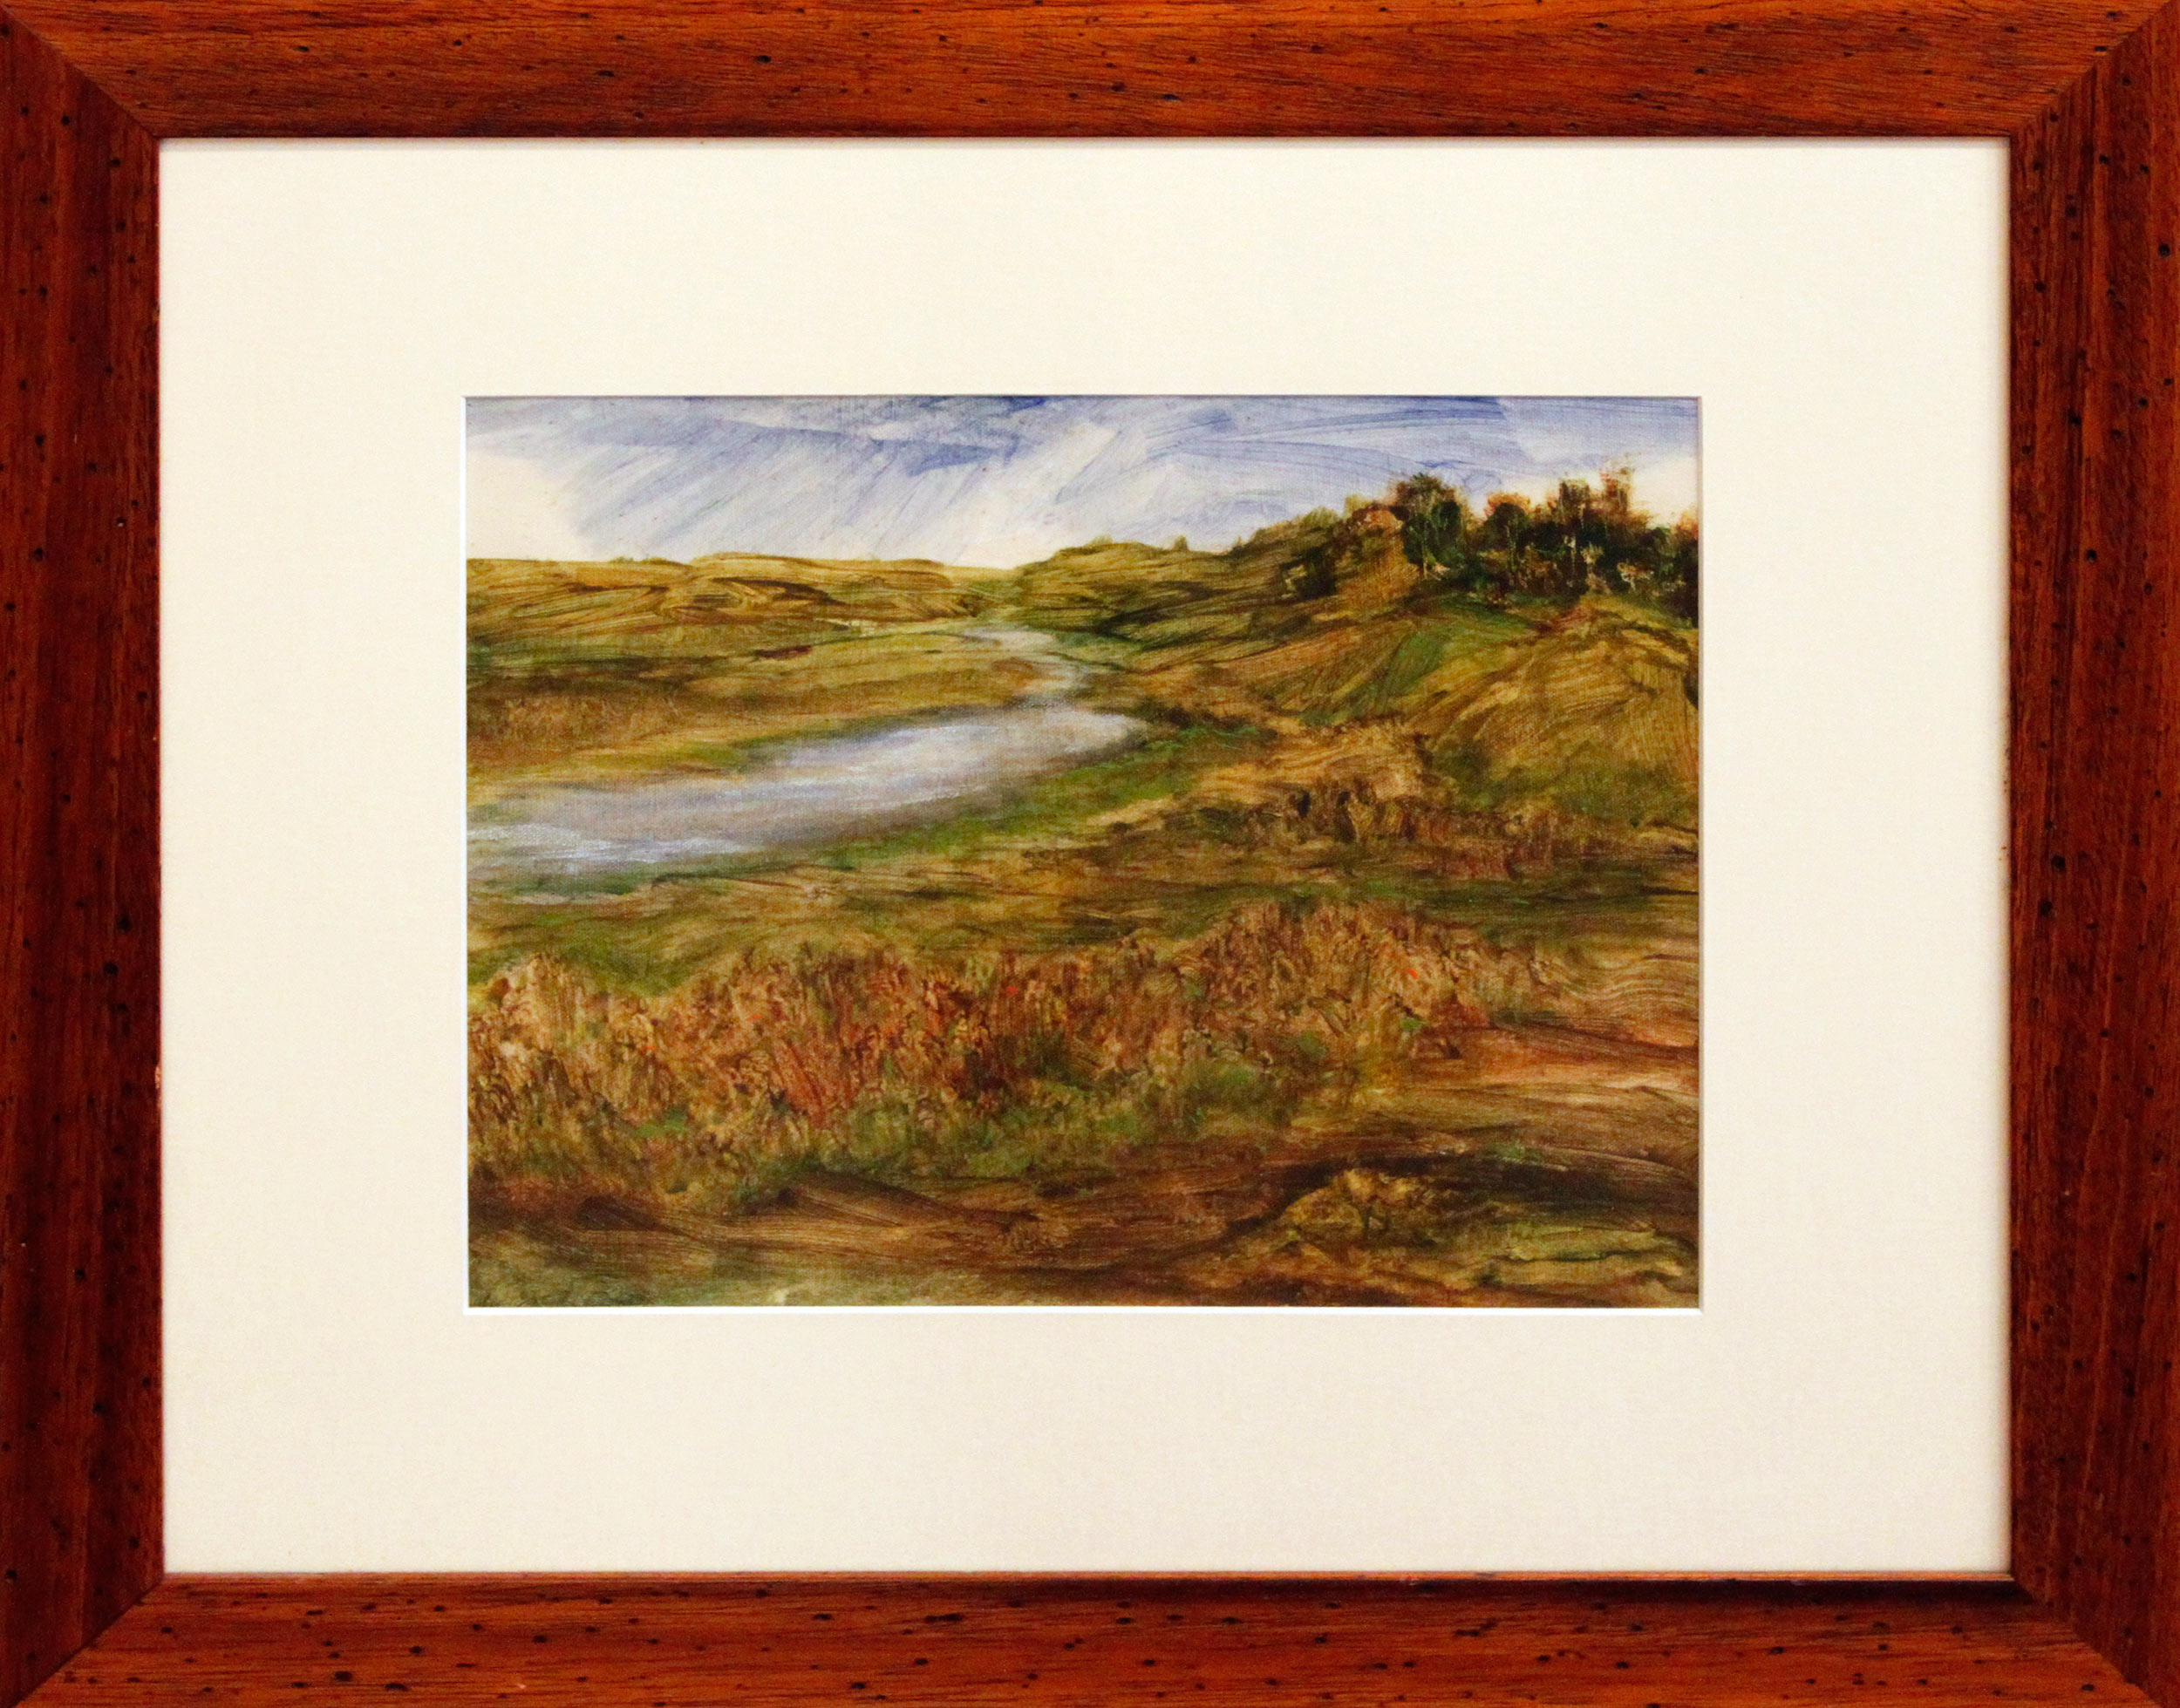 Landscape and River (Framed)